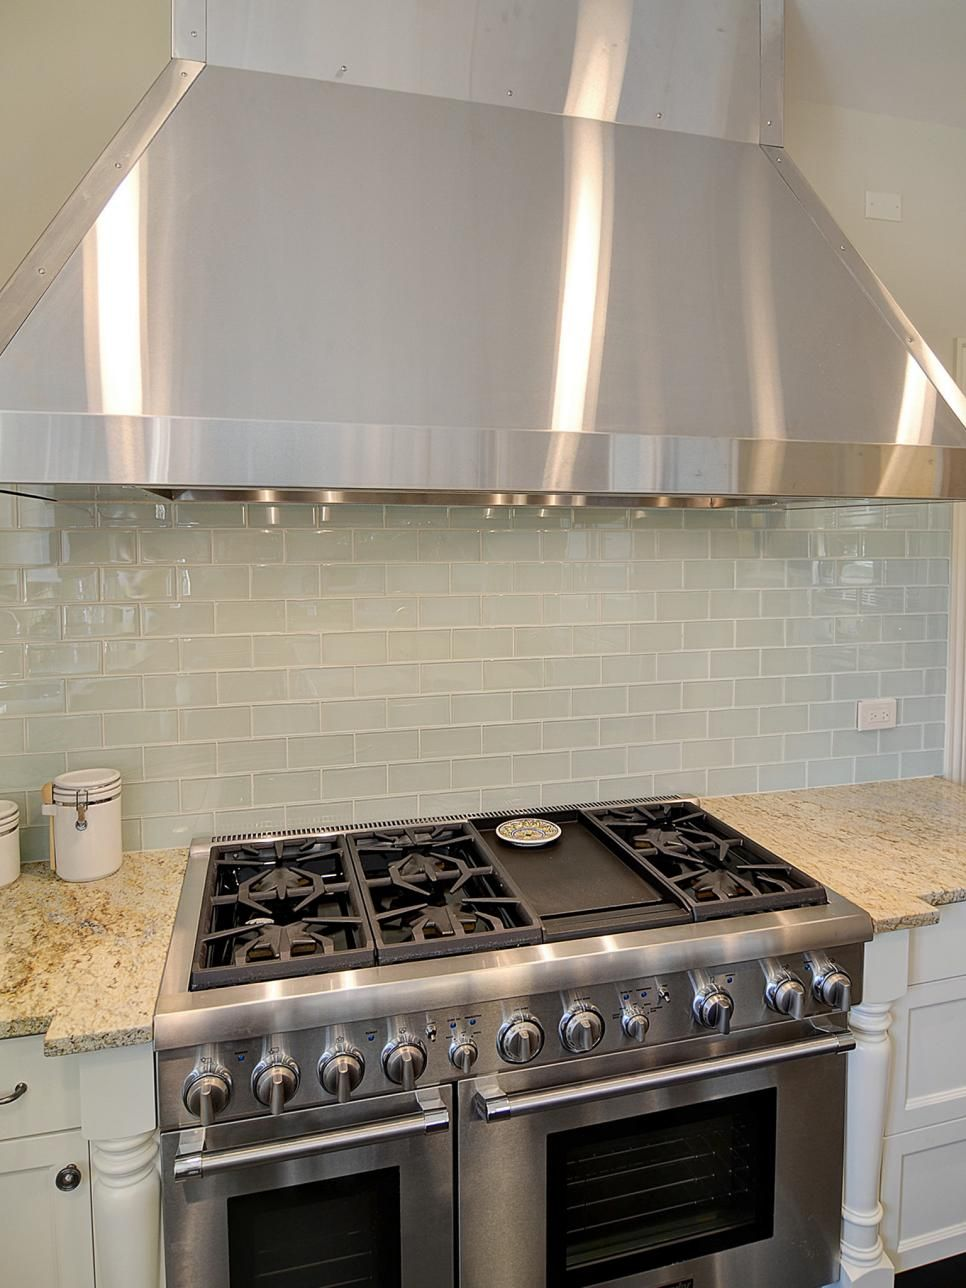 A detail photo of a stainless steel range and range hood ...